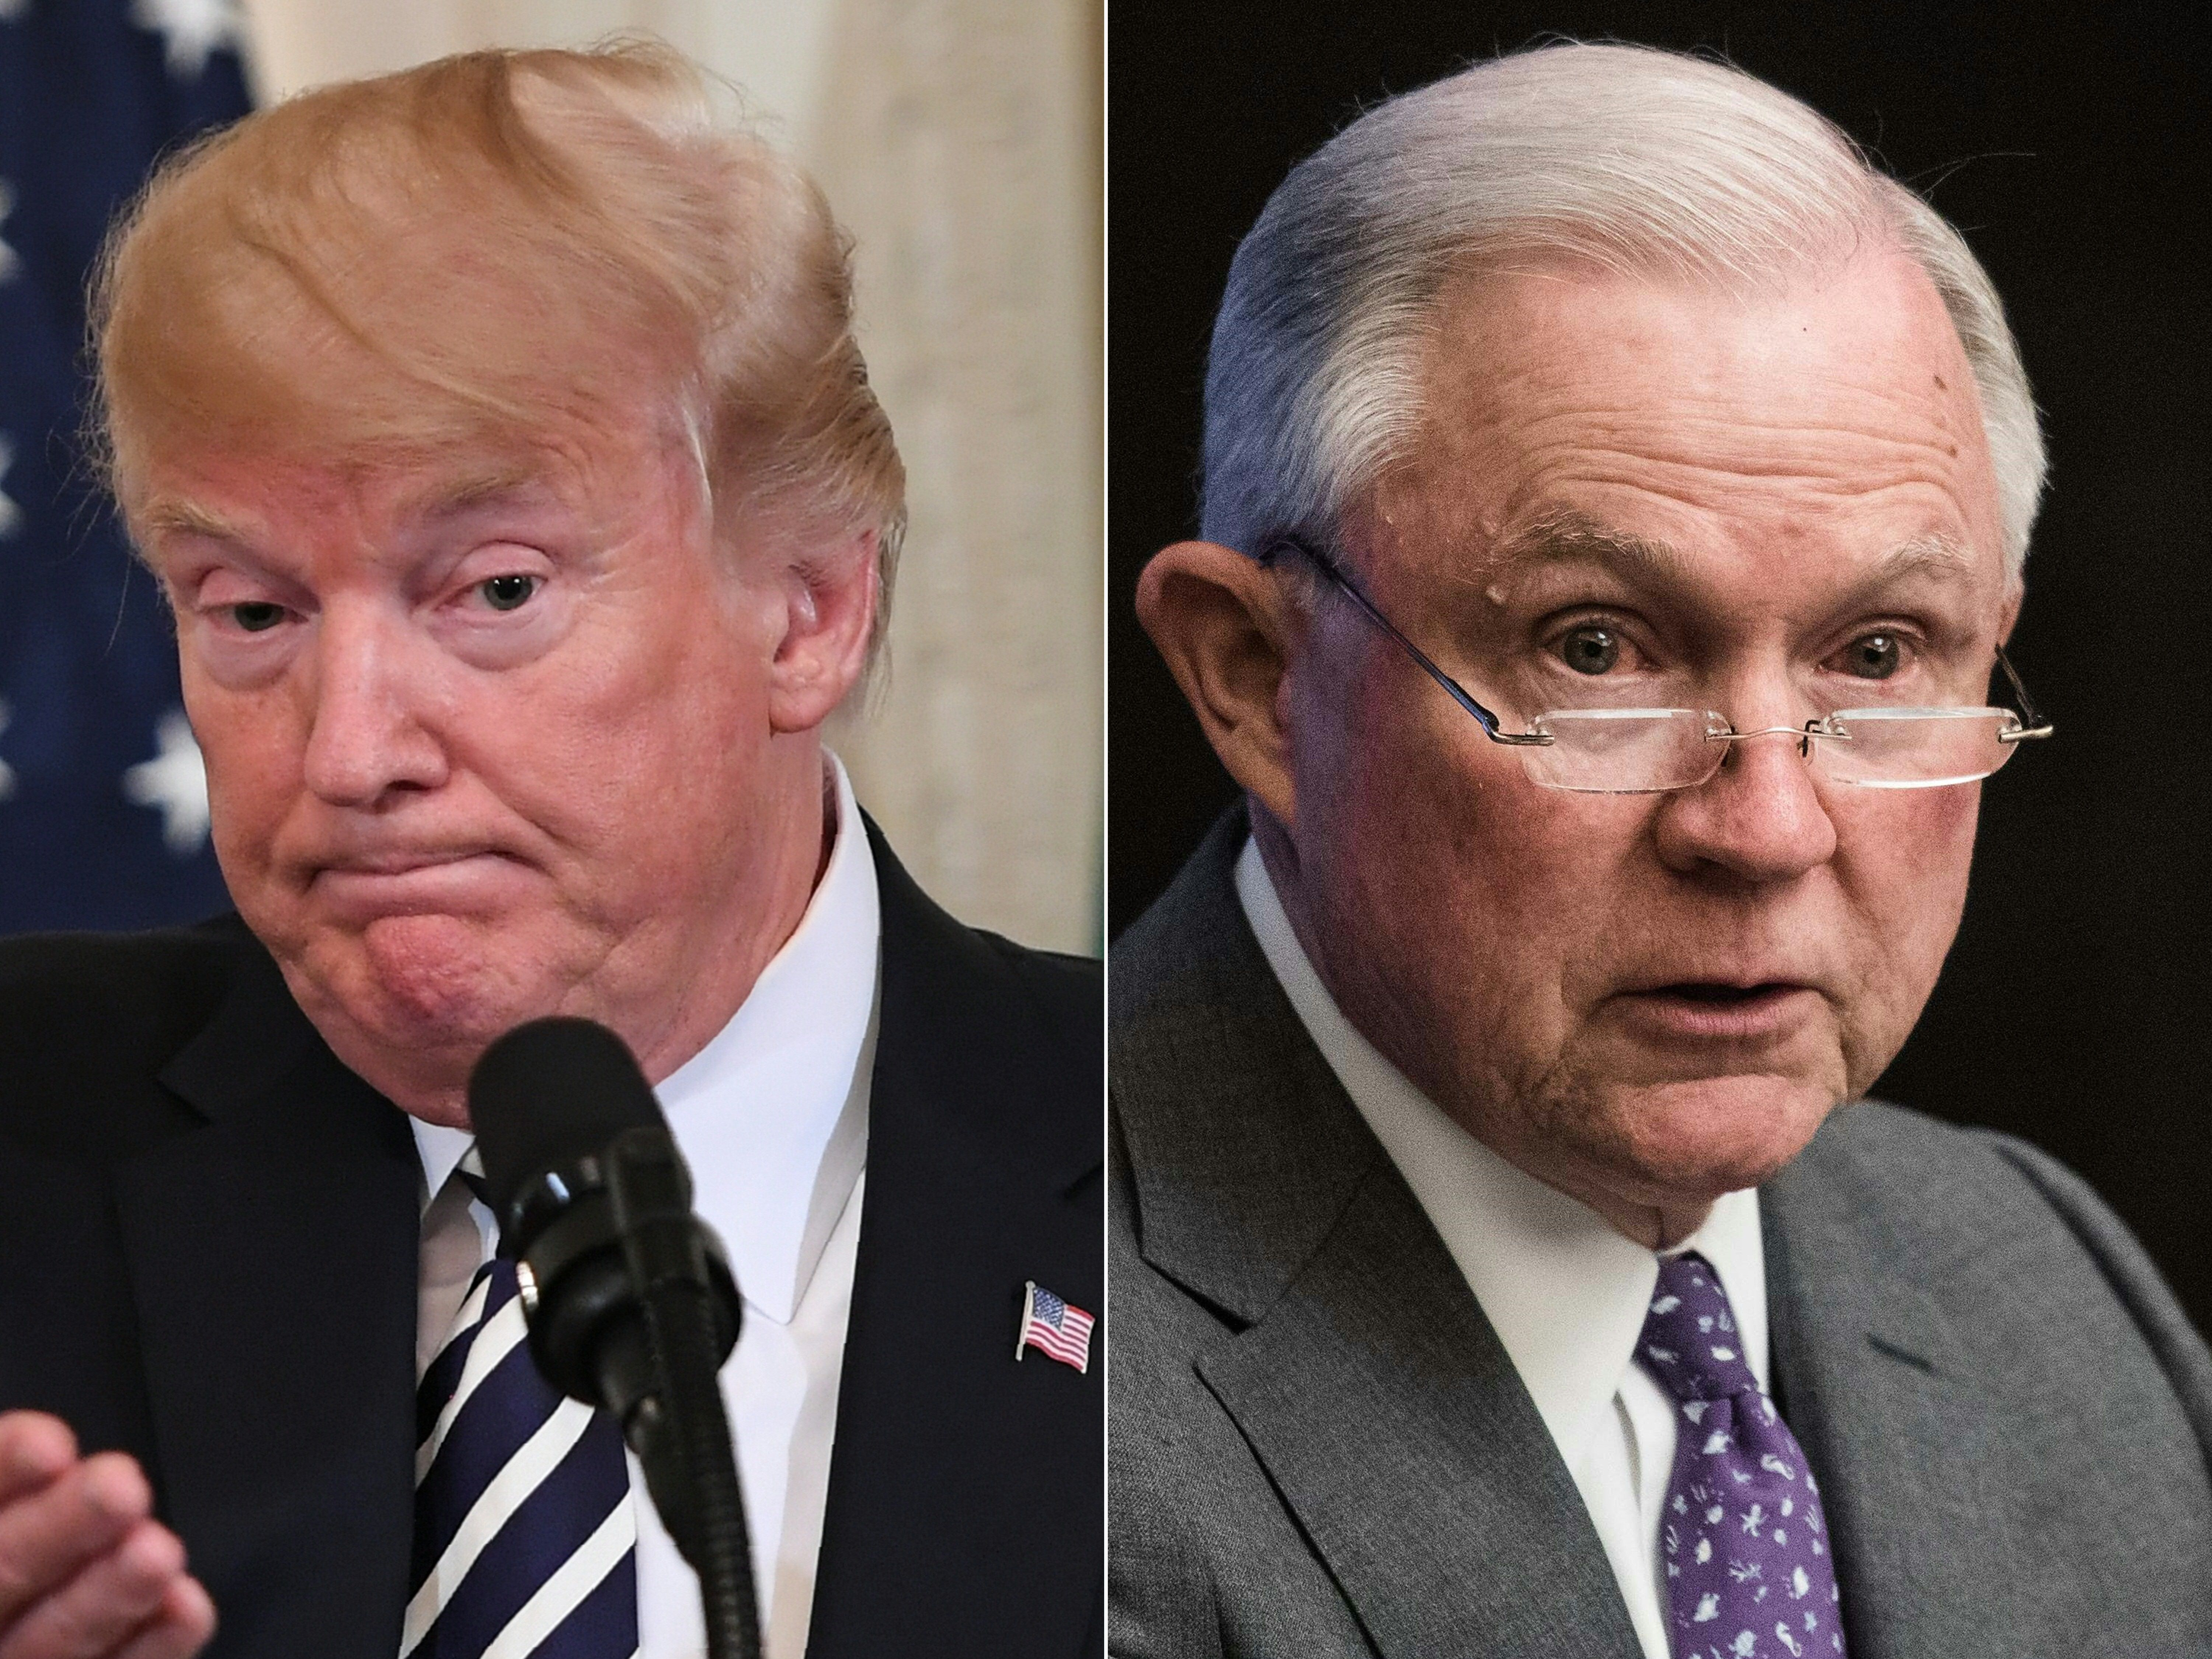 President Donald Trump announced Wednesday that Jeff Sessions resigned as U.S. attorney general